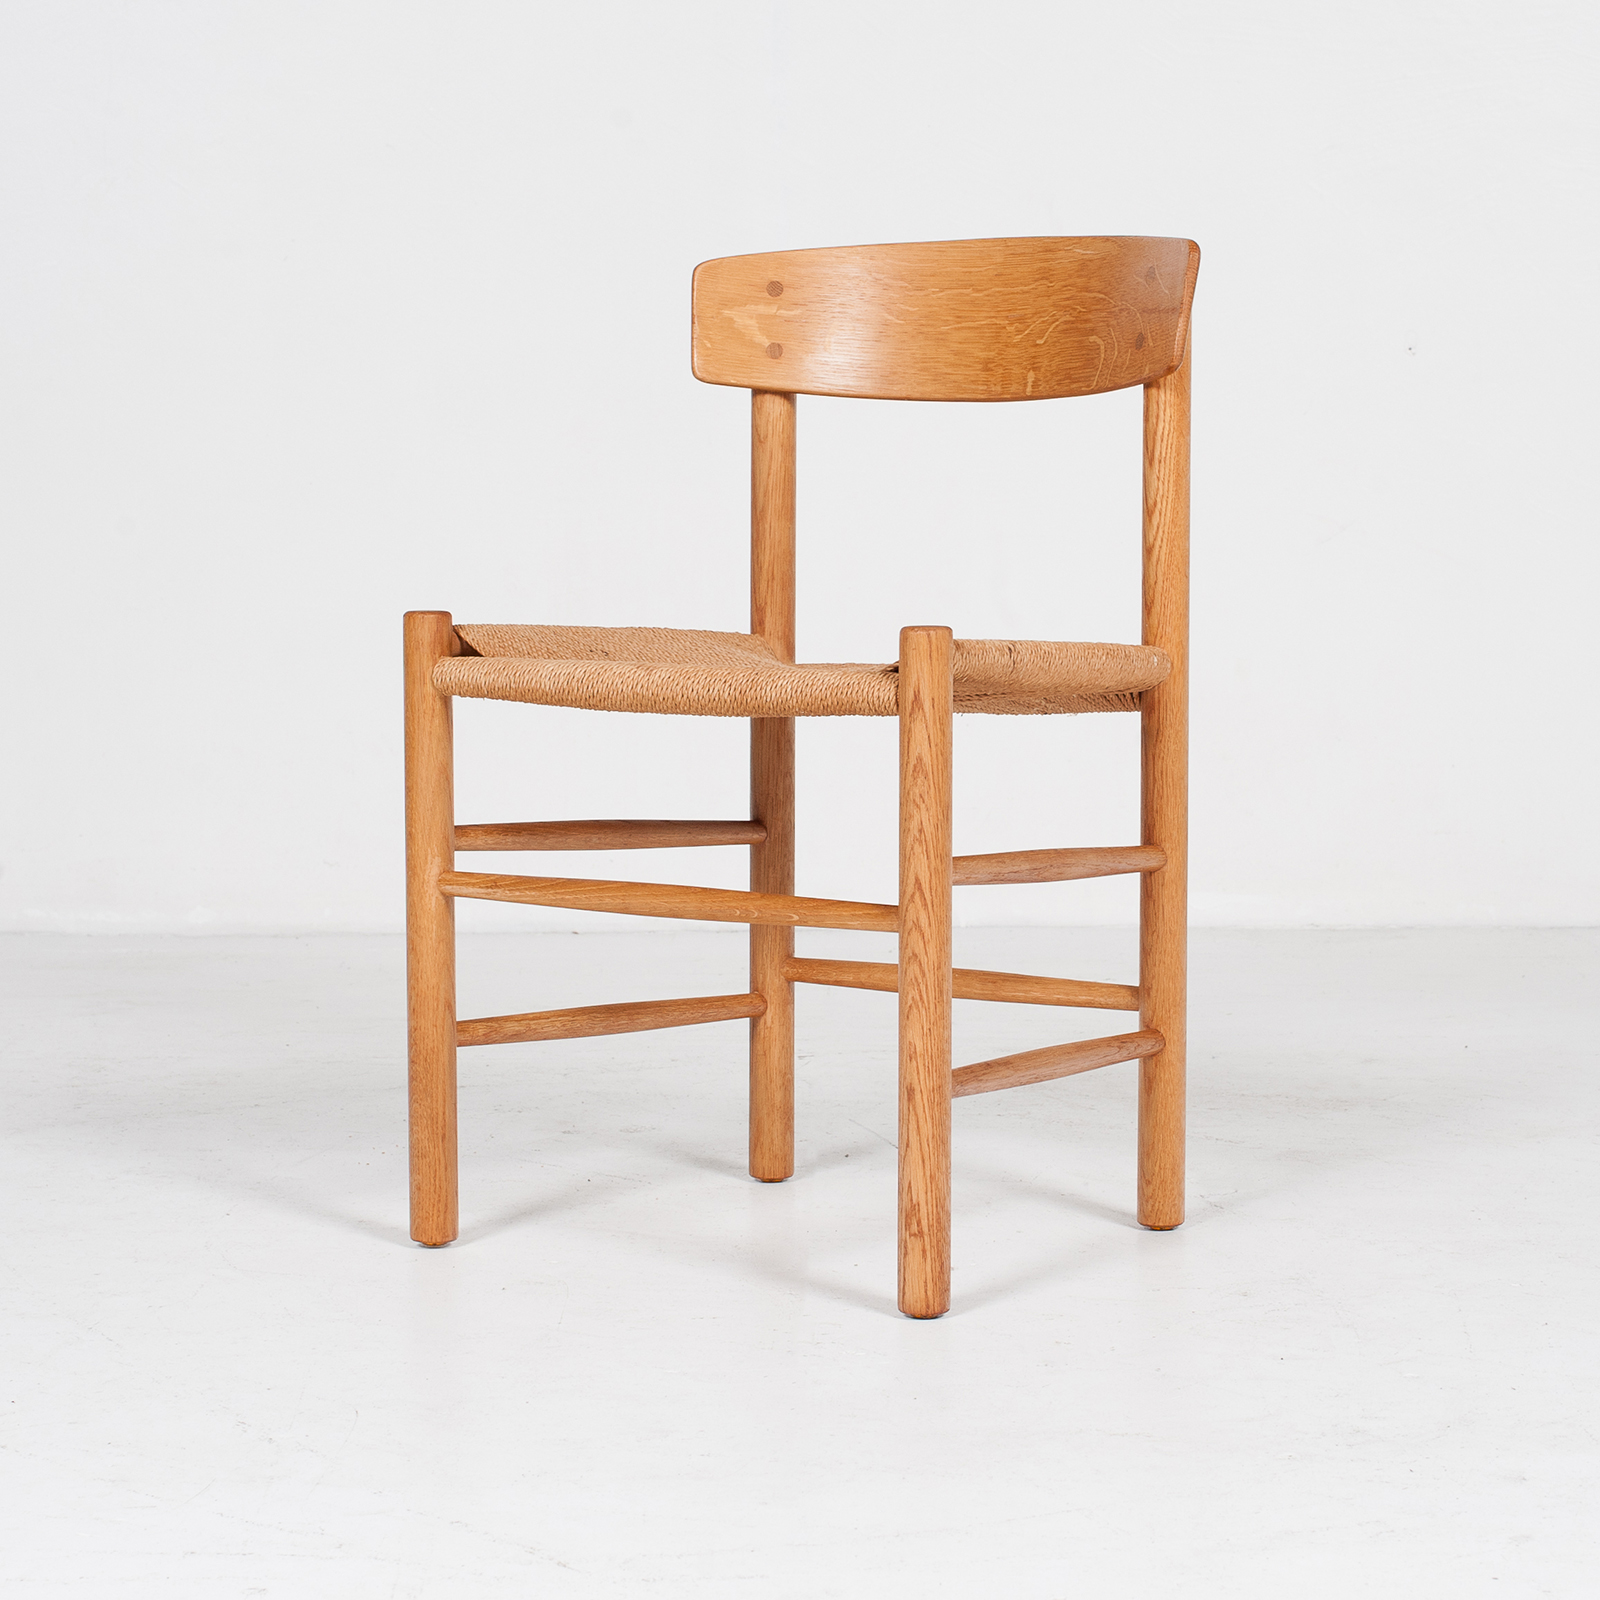 Set Of 4 Model J39 Mogensen Chairs By Borge Mogensen In Oak And Paper Cord, 1960s, Denmark87